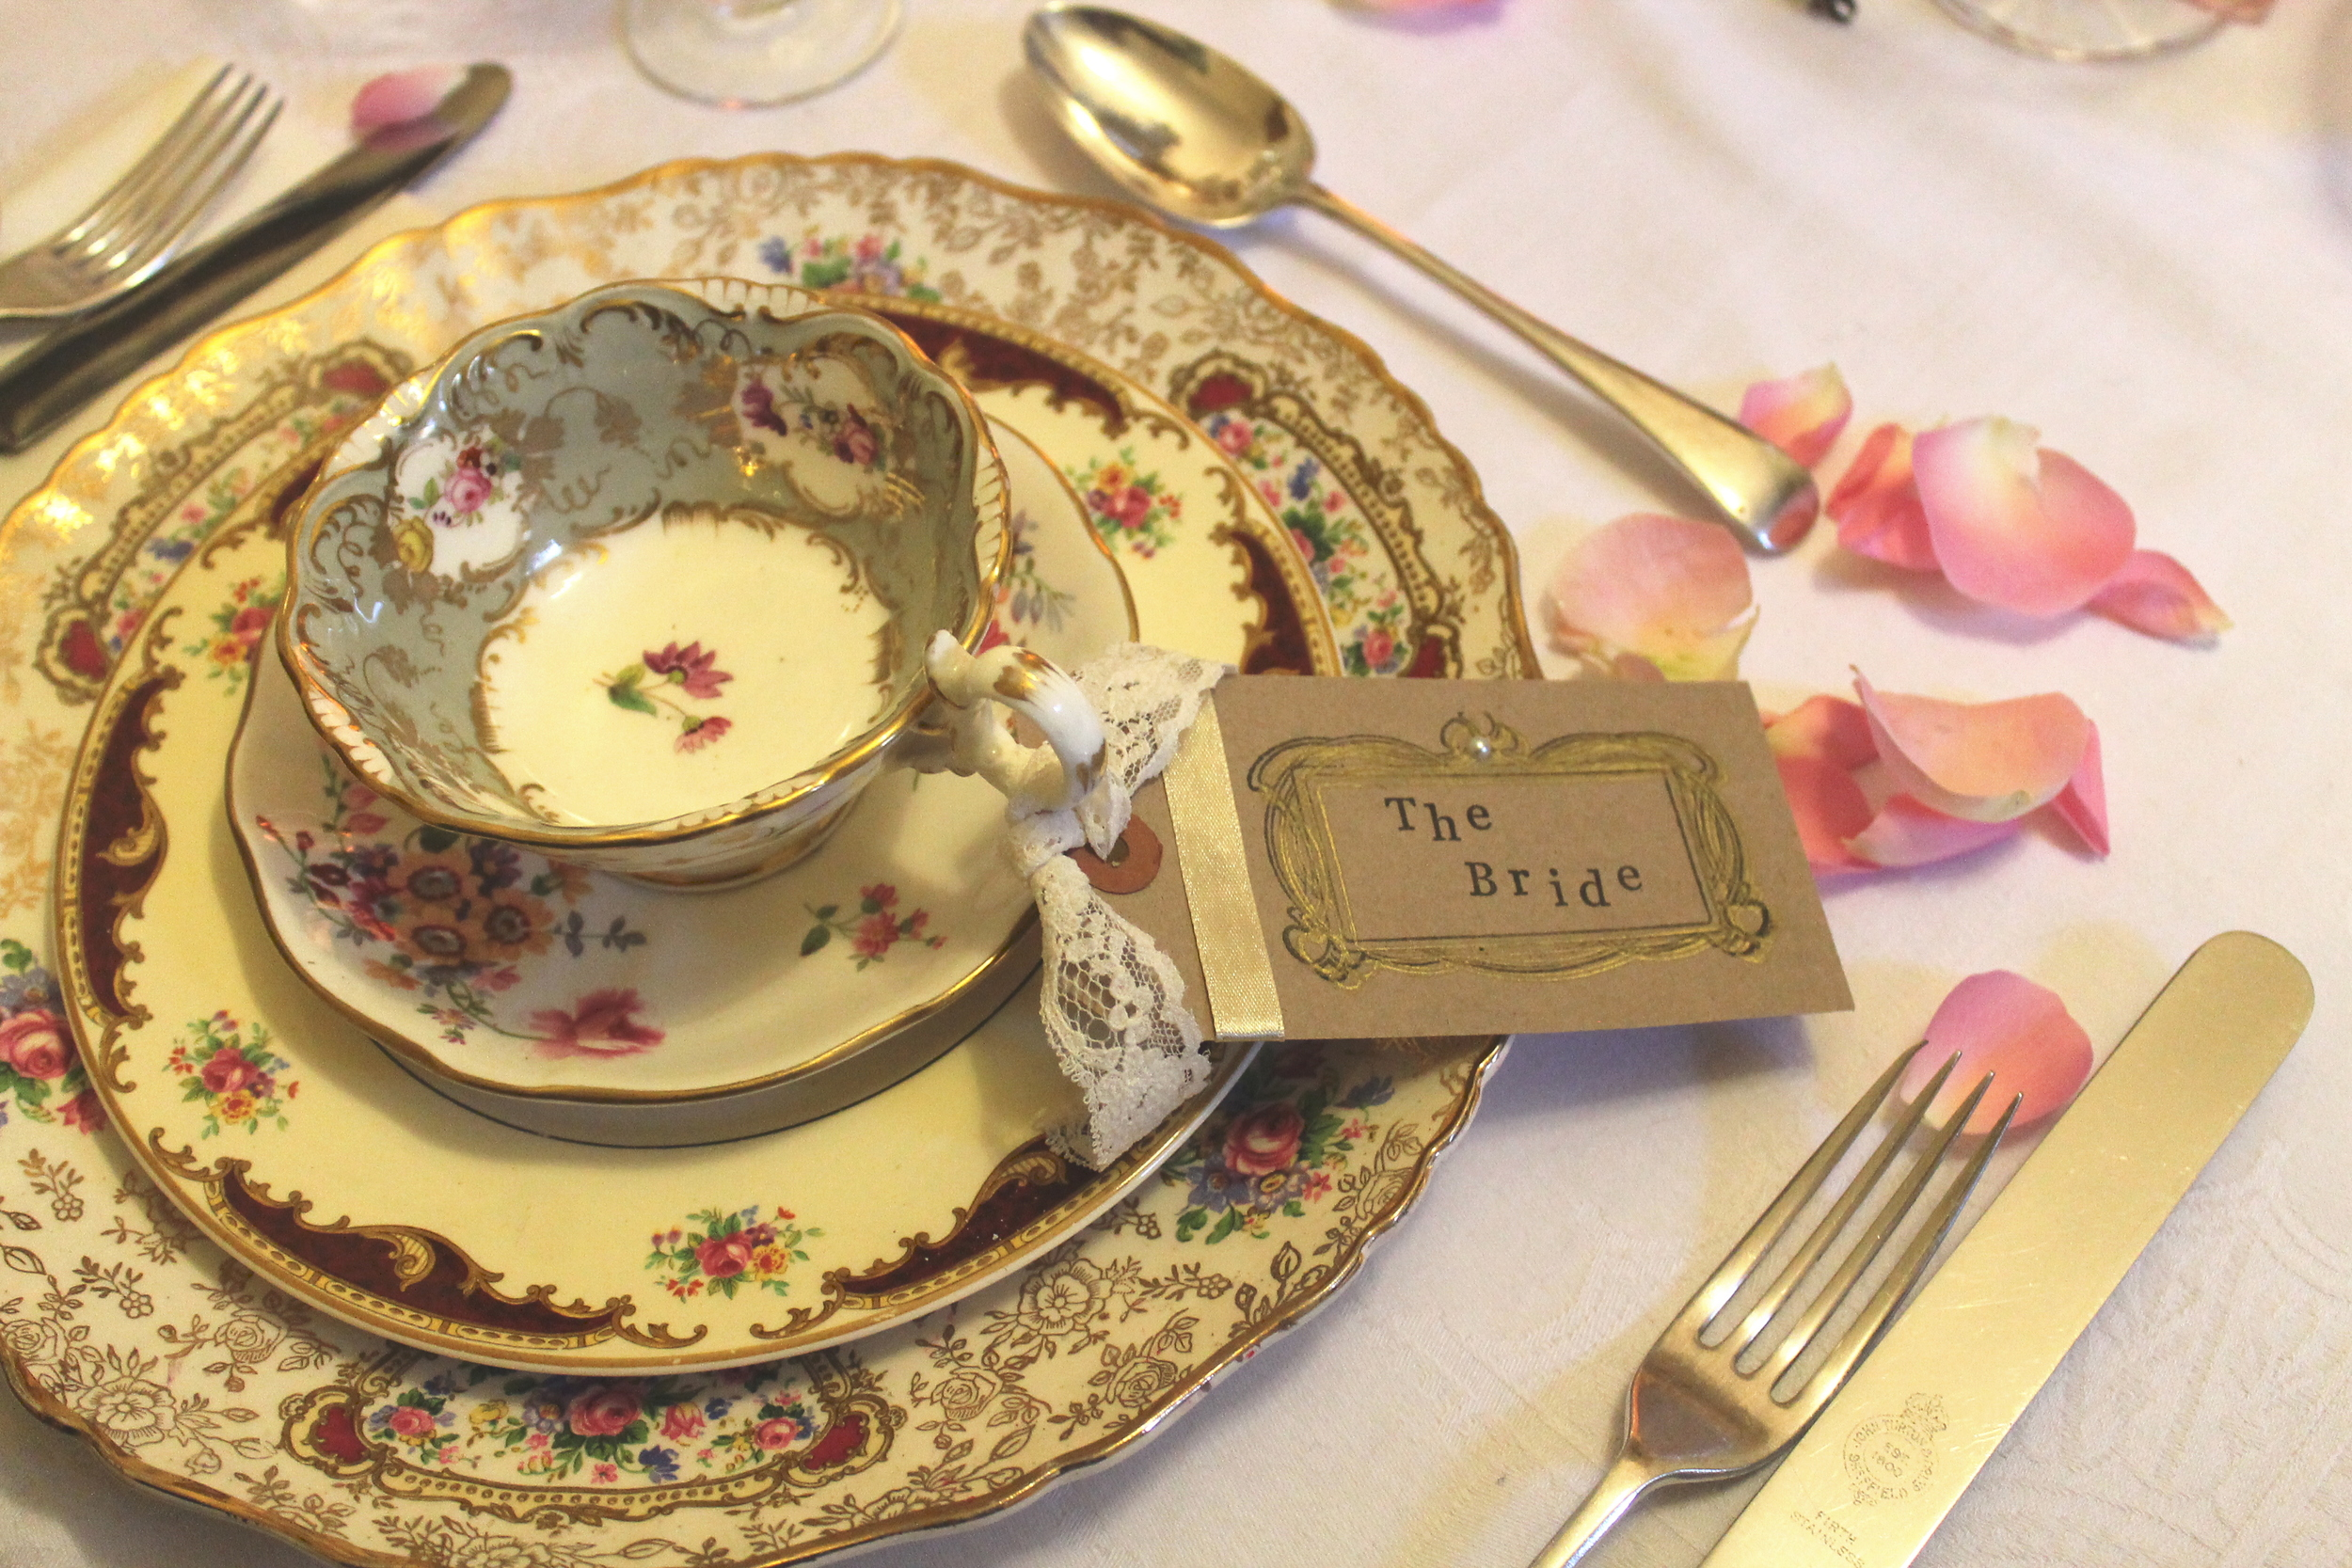 weddings page and inventory - cutlery place setting.jpg